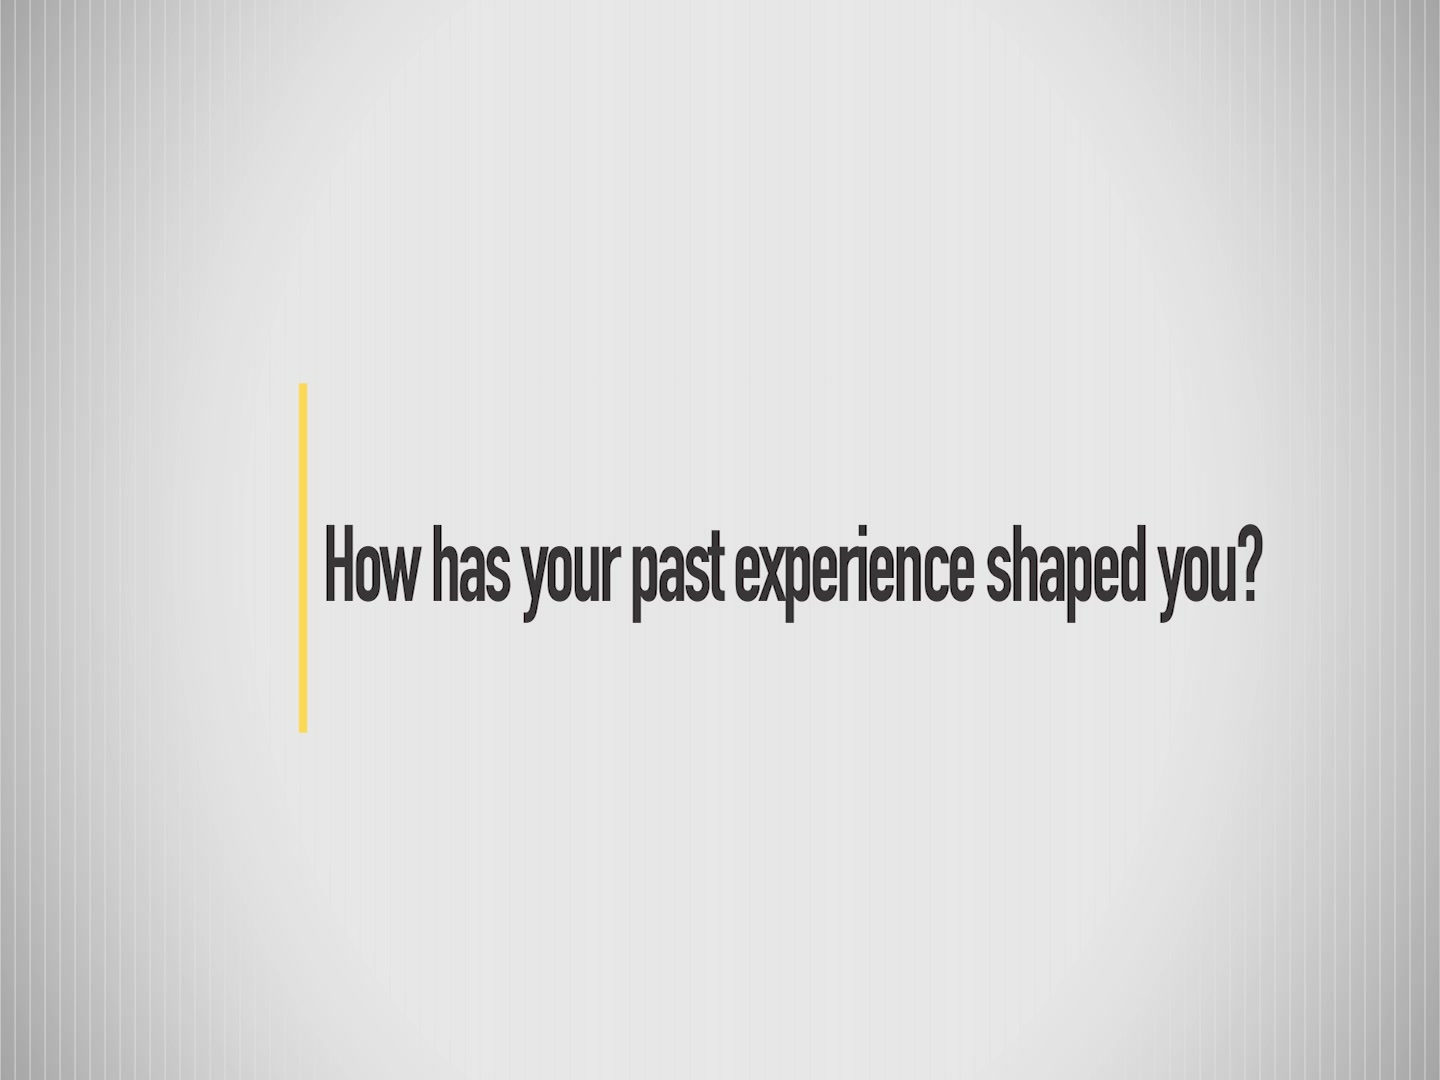 How has your past experience shaped you?